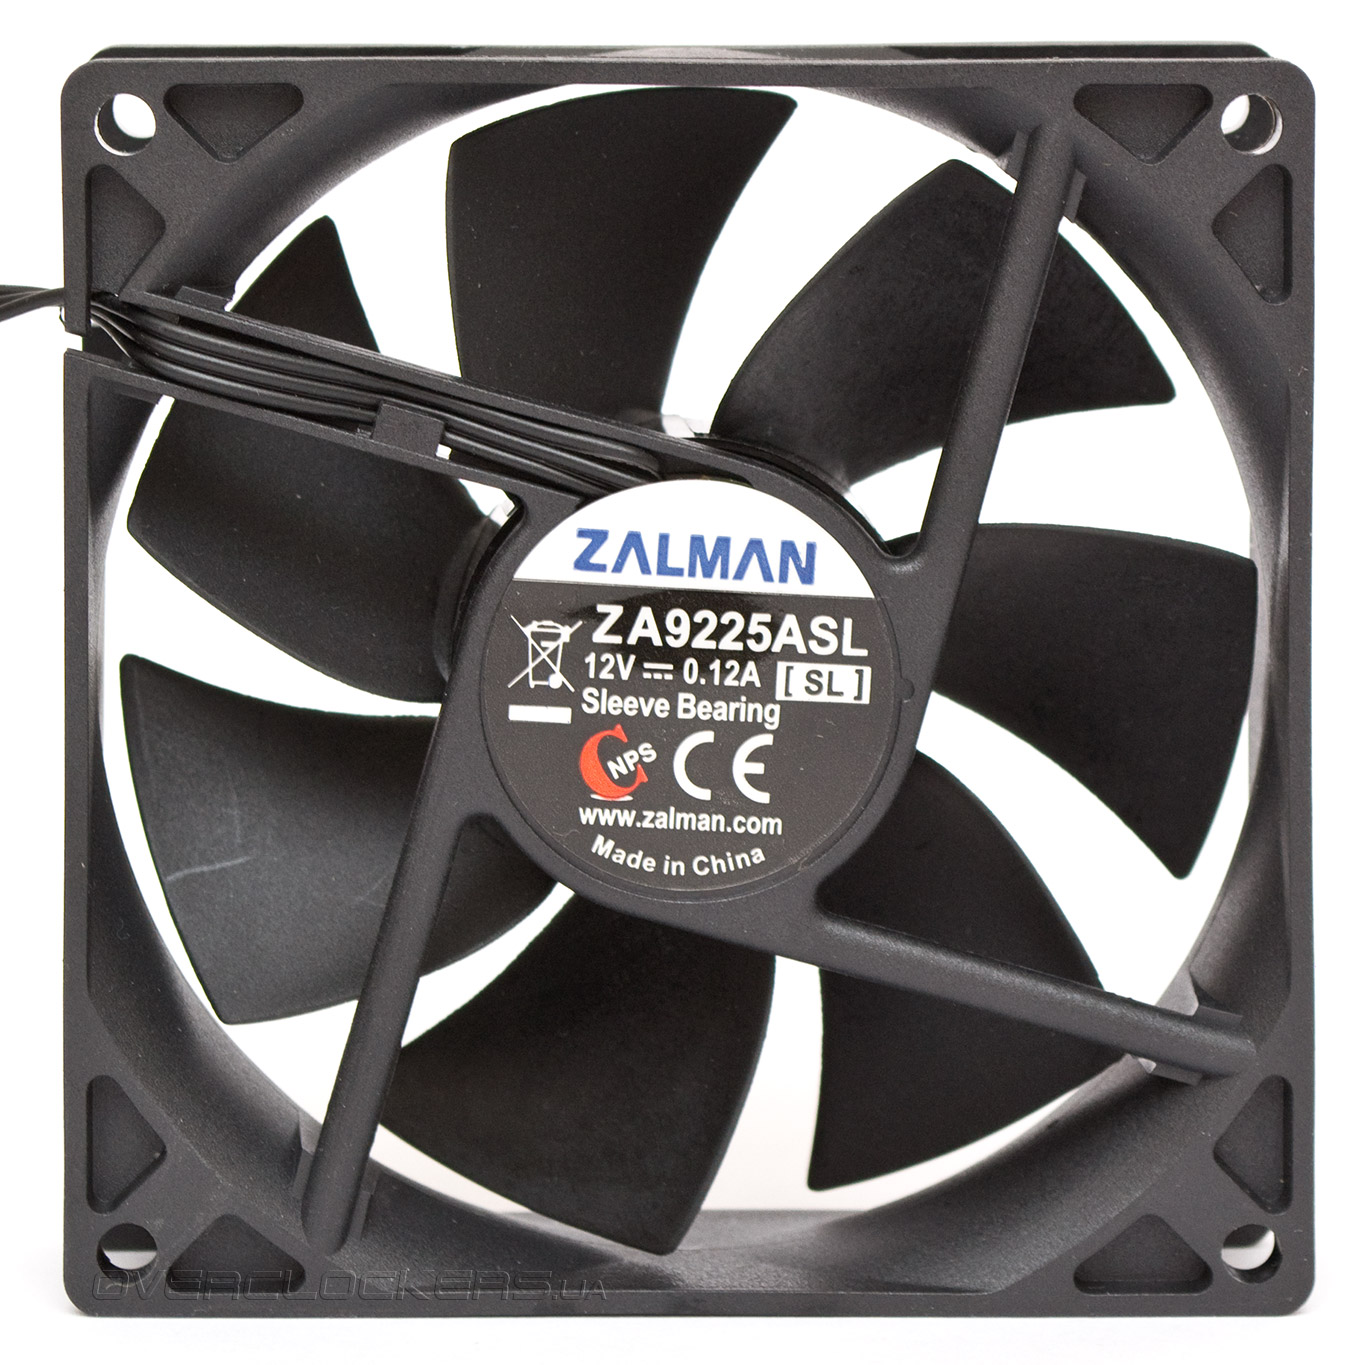 59-big-zalman-ms800-plus.jpg